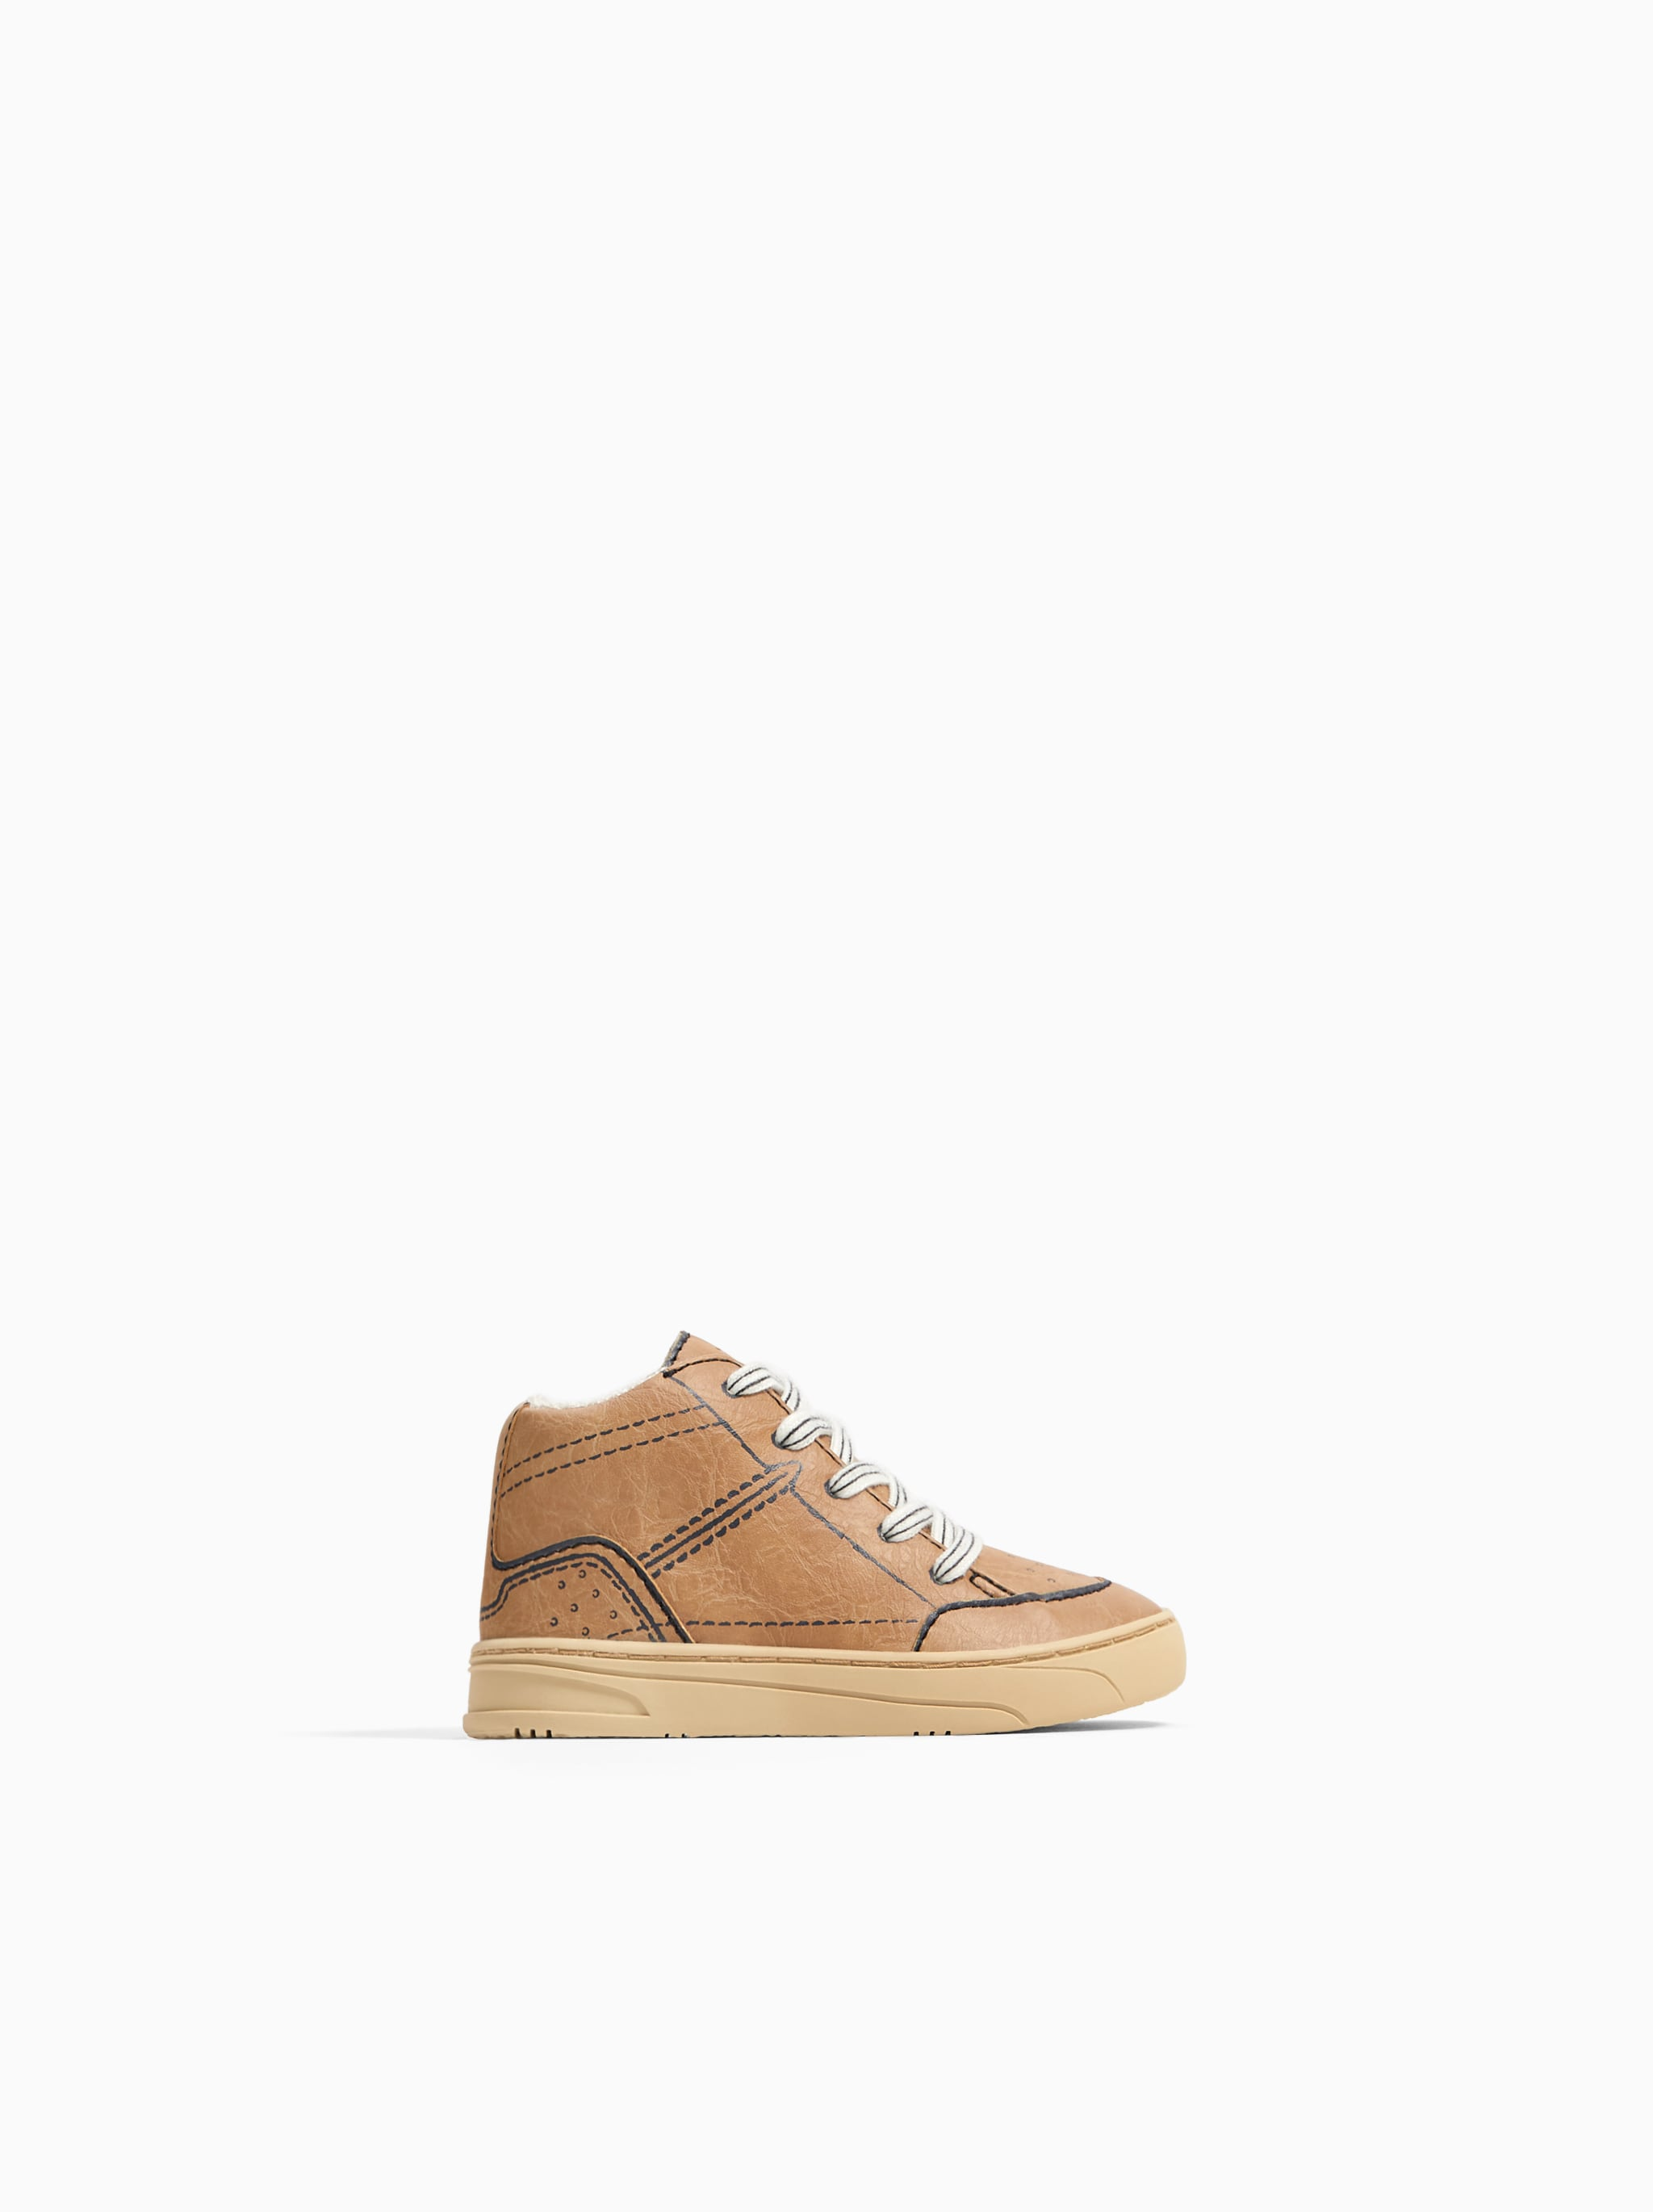 b49d4292b860 Zara OUTLINED HIGH TOP SNEAKERS